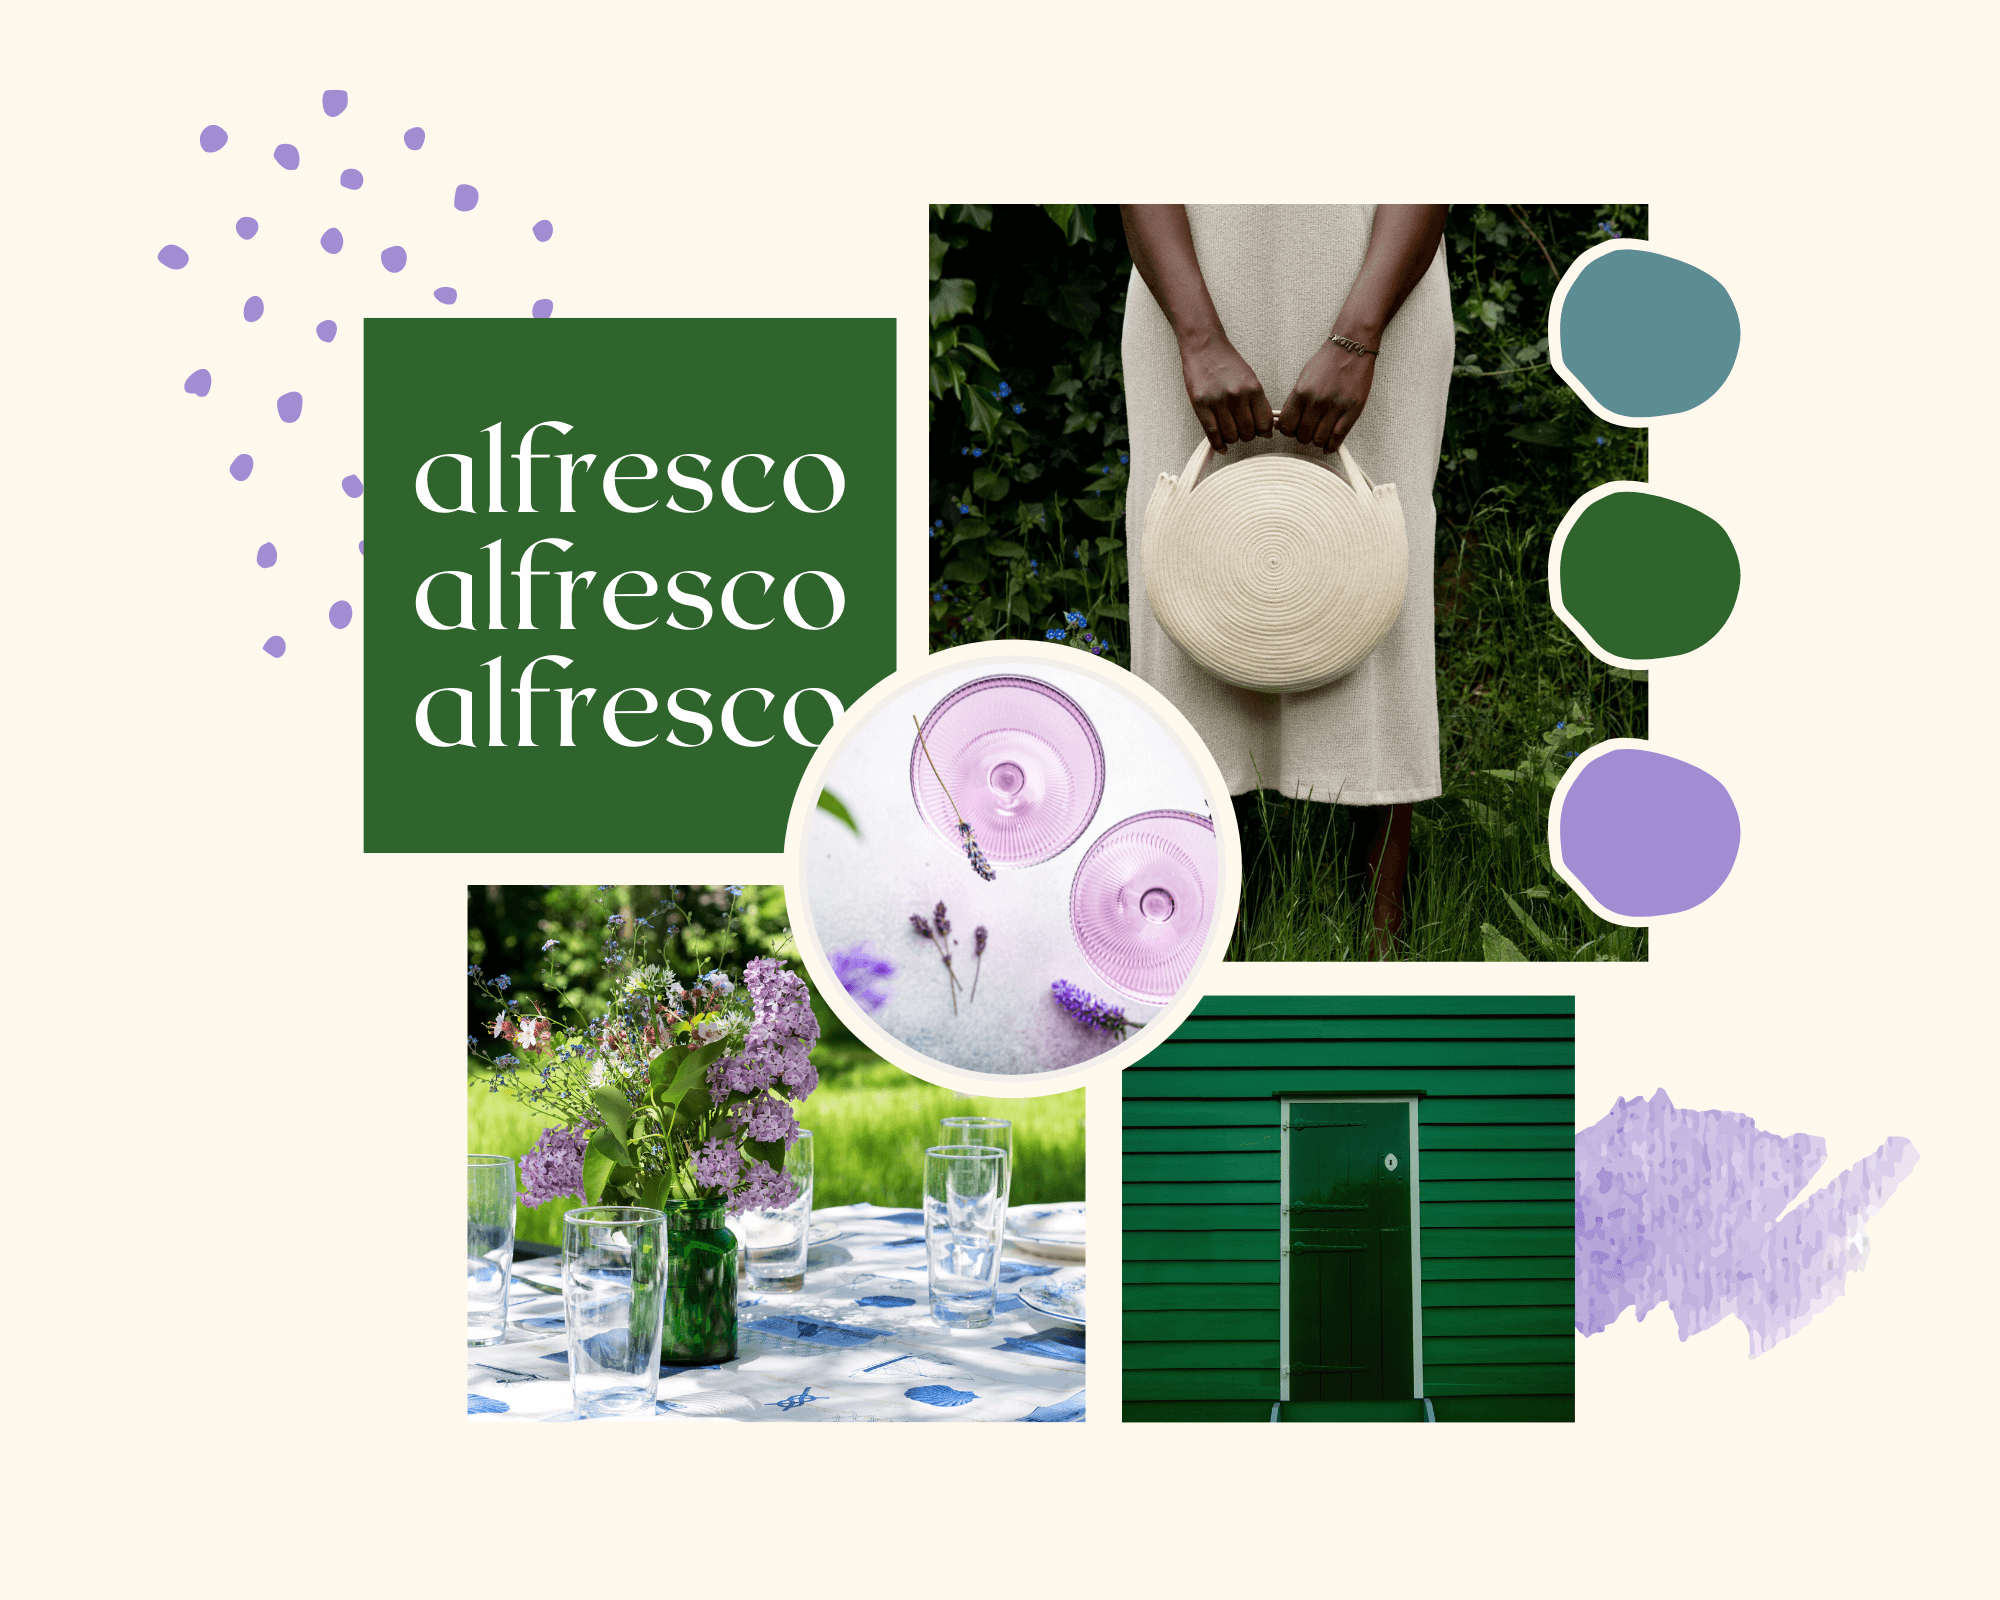 La Basketry's mood boards for summer styling your handmade cotton rope basket bag. This look is alfresco, for a weekend spent outdoors